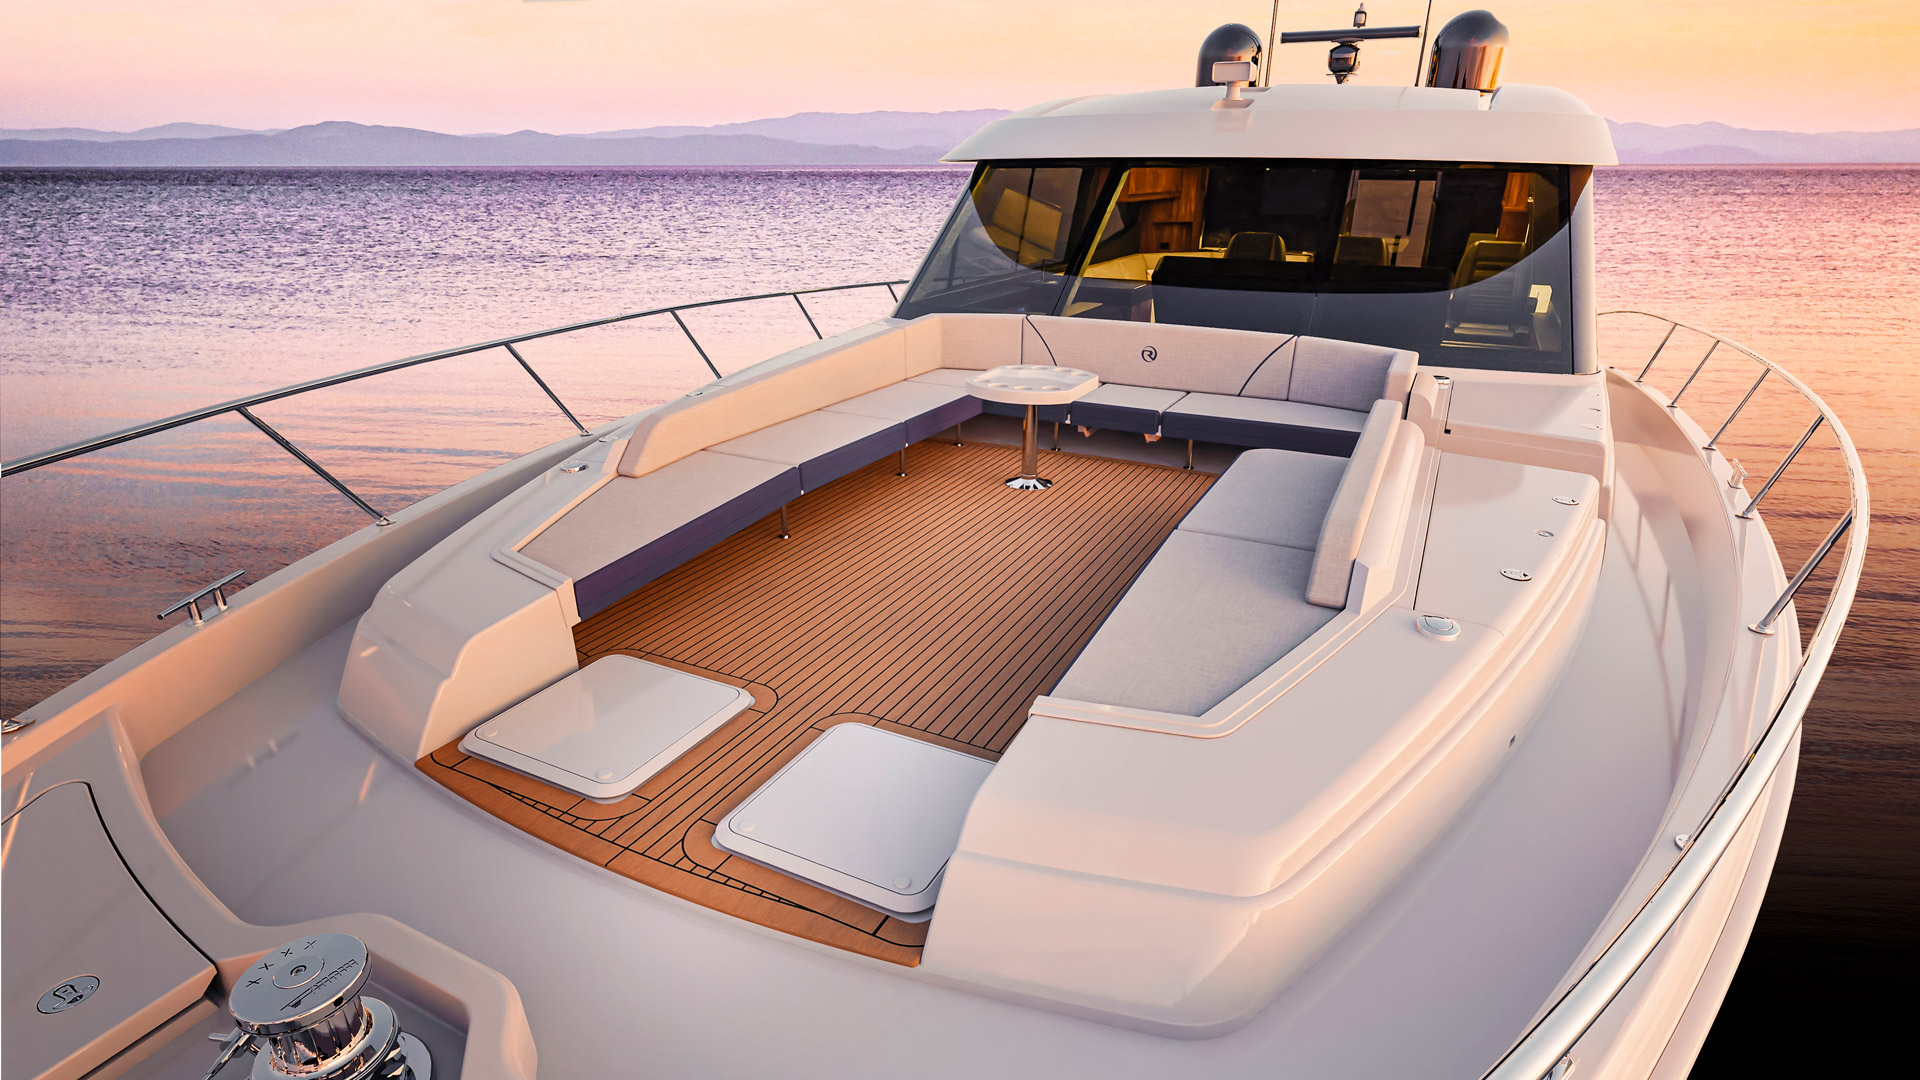 Riviera 645 SUV Foredeck 02 – Options shown